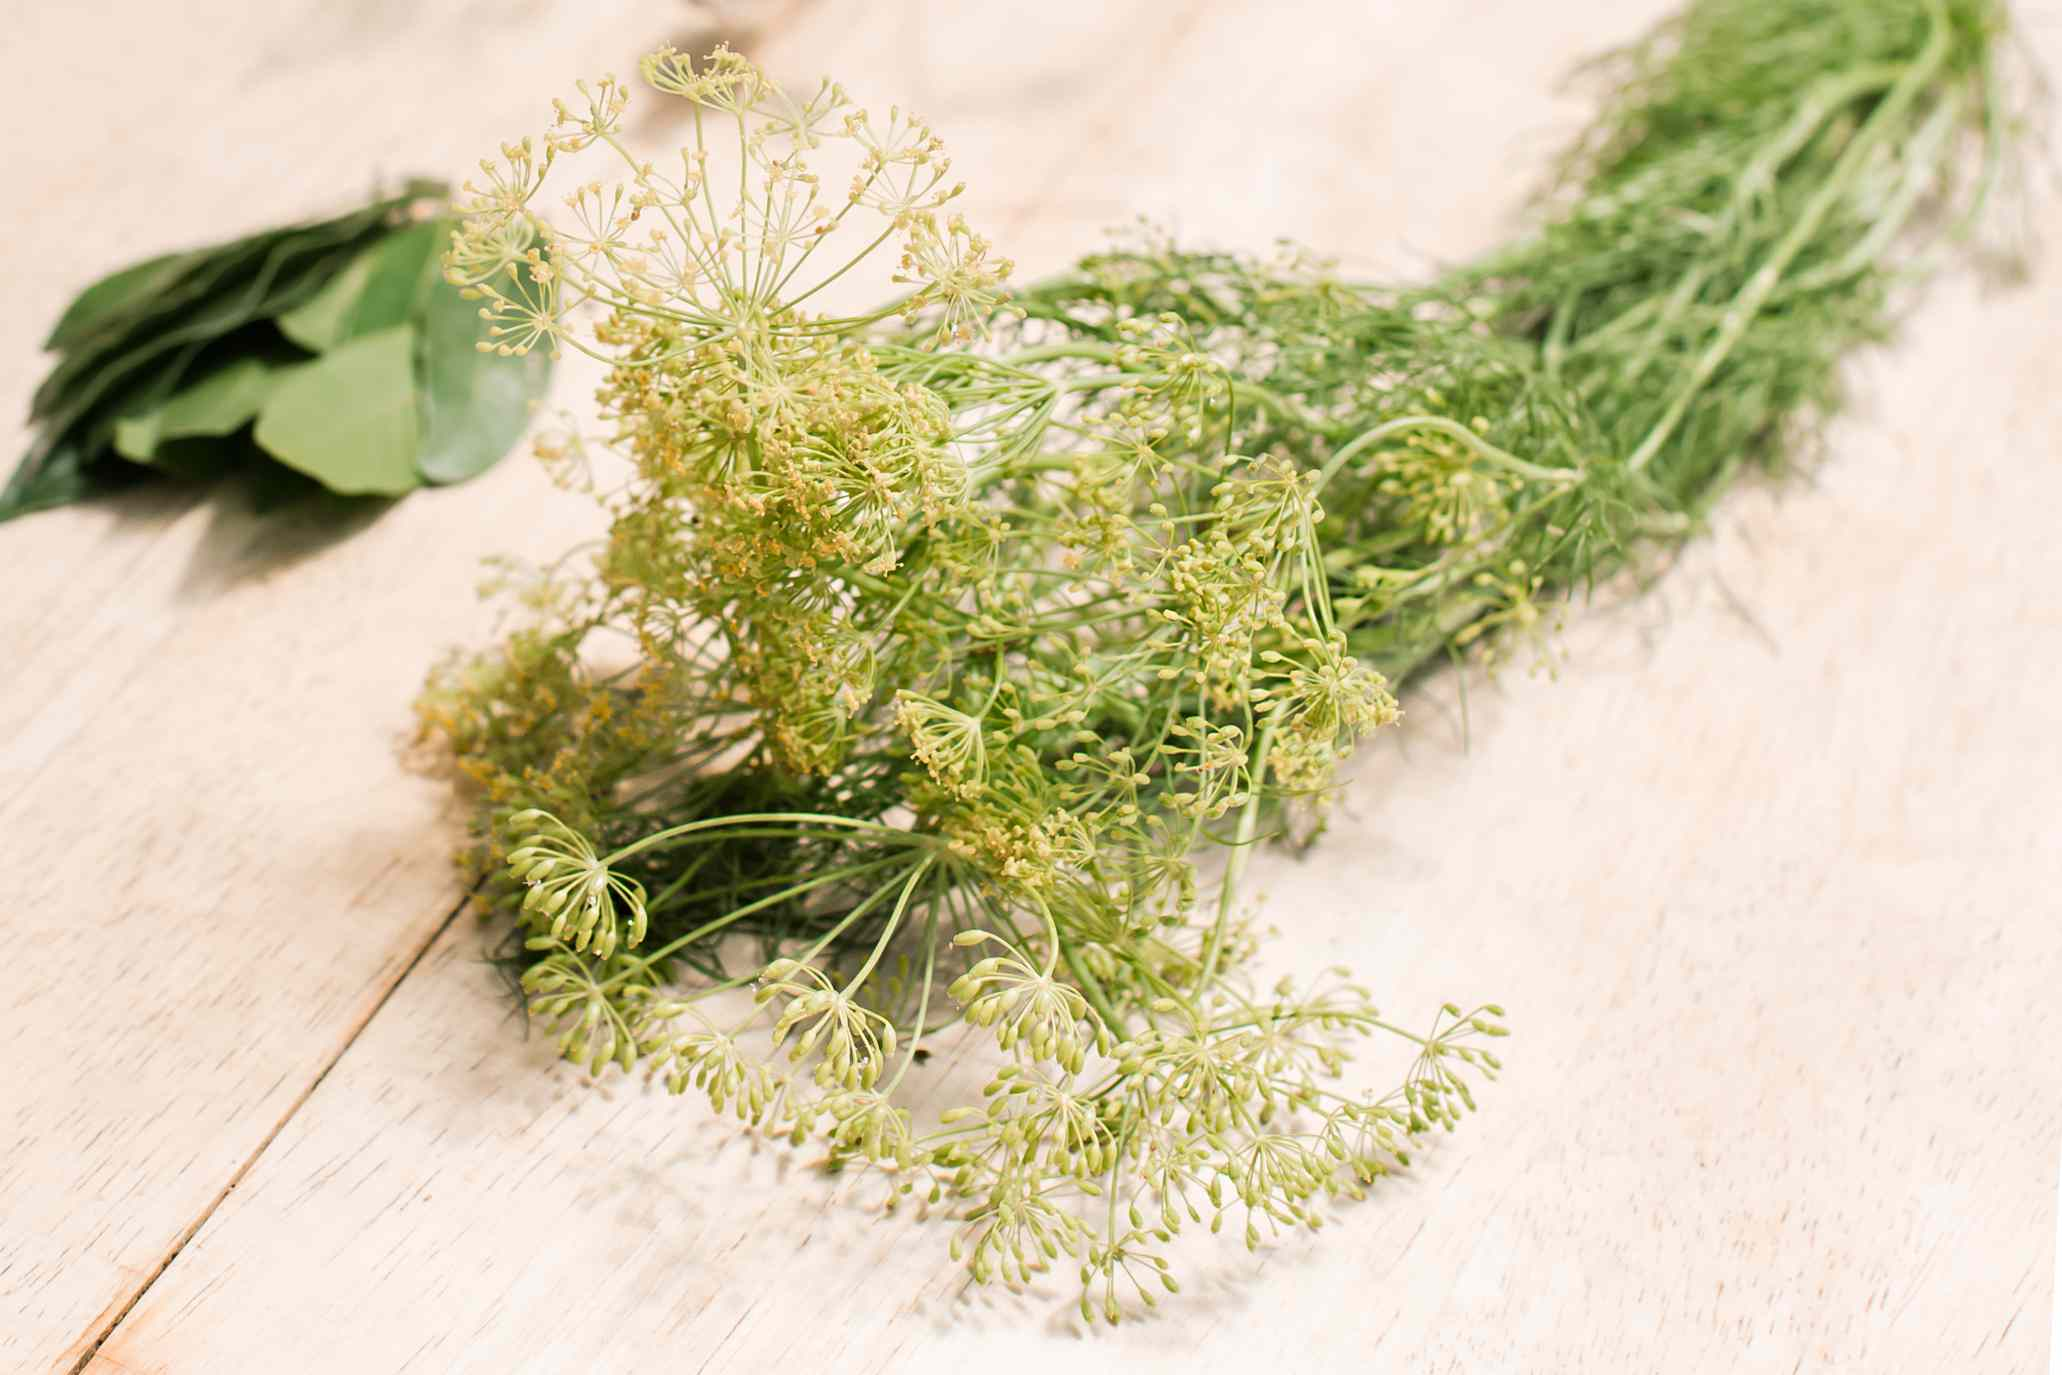 bundle of dill